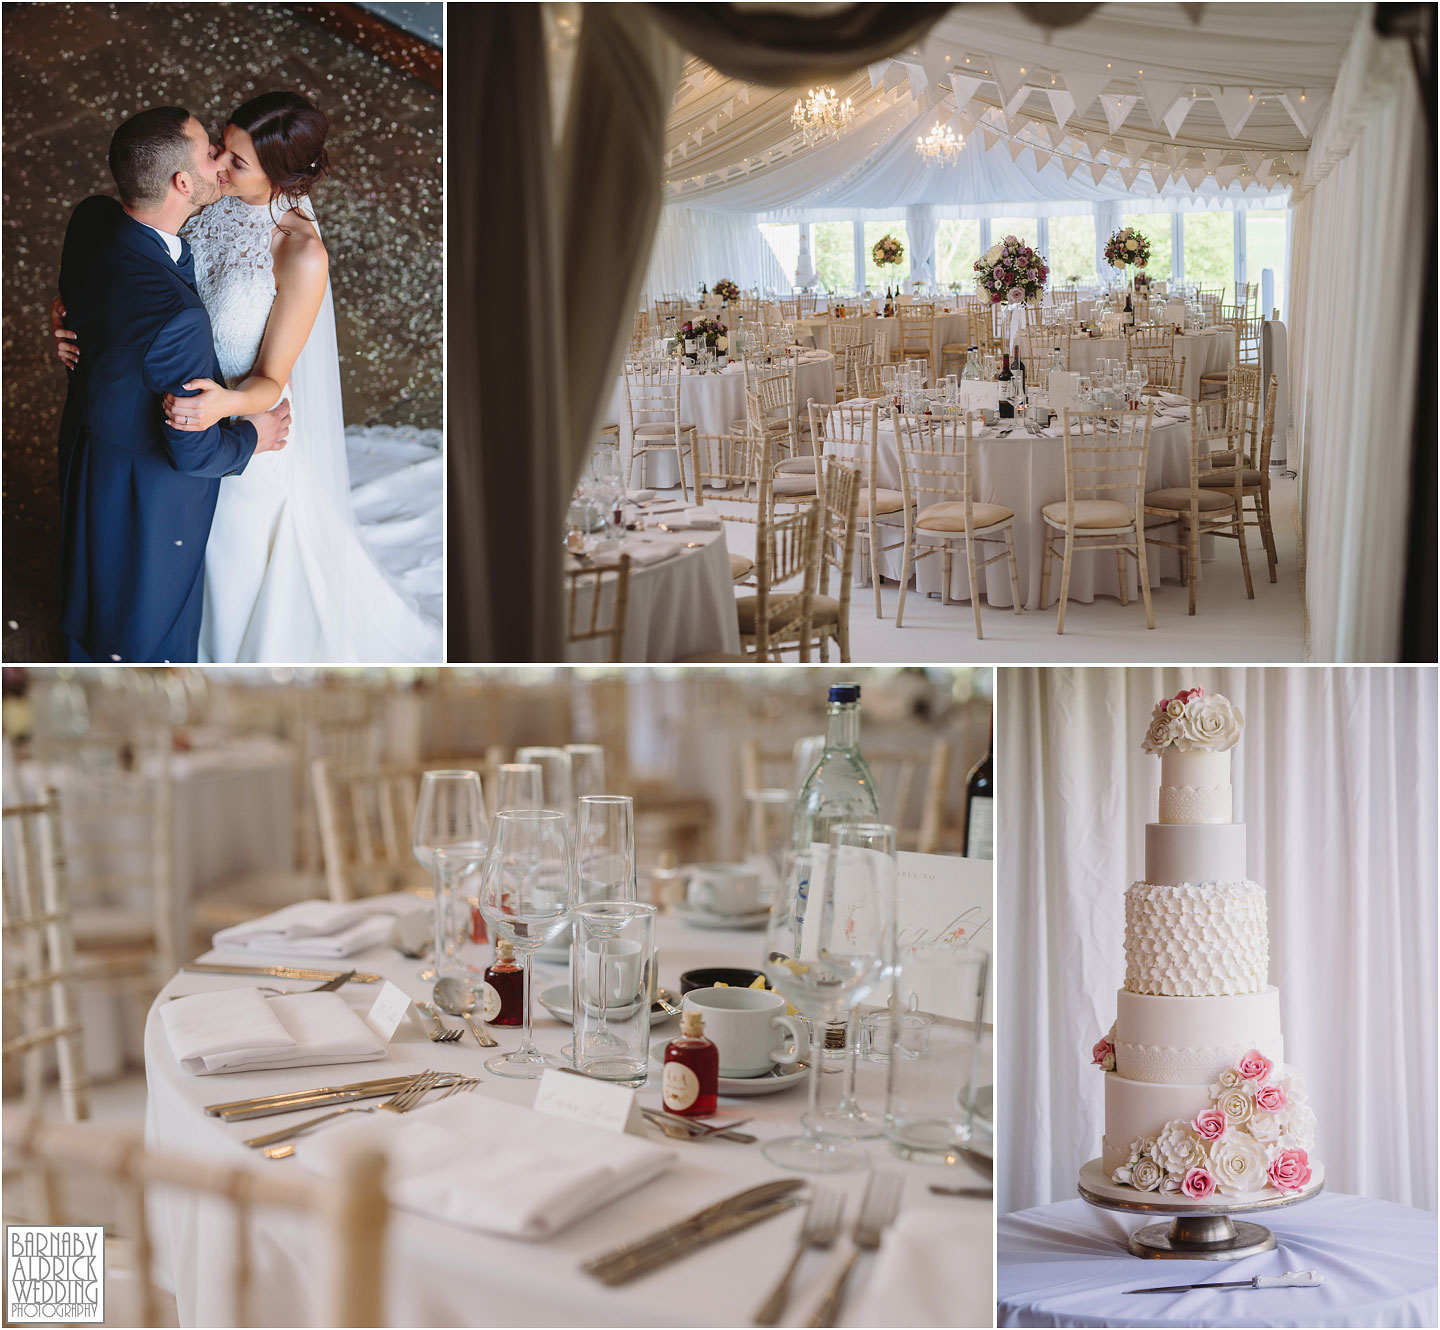 Priory Cottages Wedding Marquee, Meal space at Priory Cottages Yorkshire, Bright white themed wedding marquee, Wedding breakfast ideas